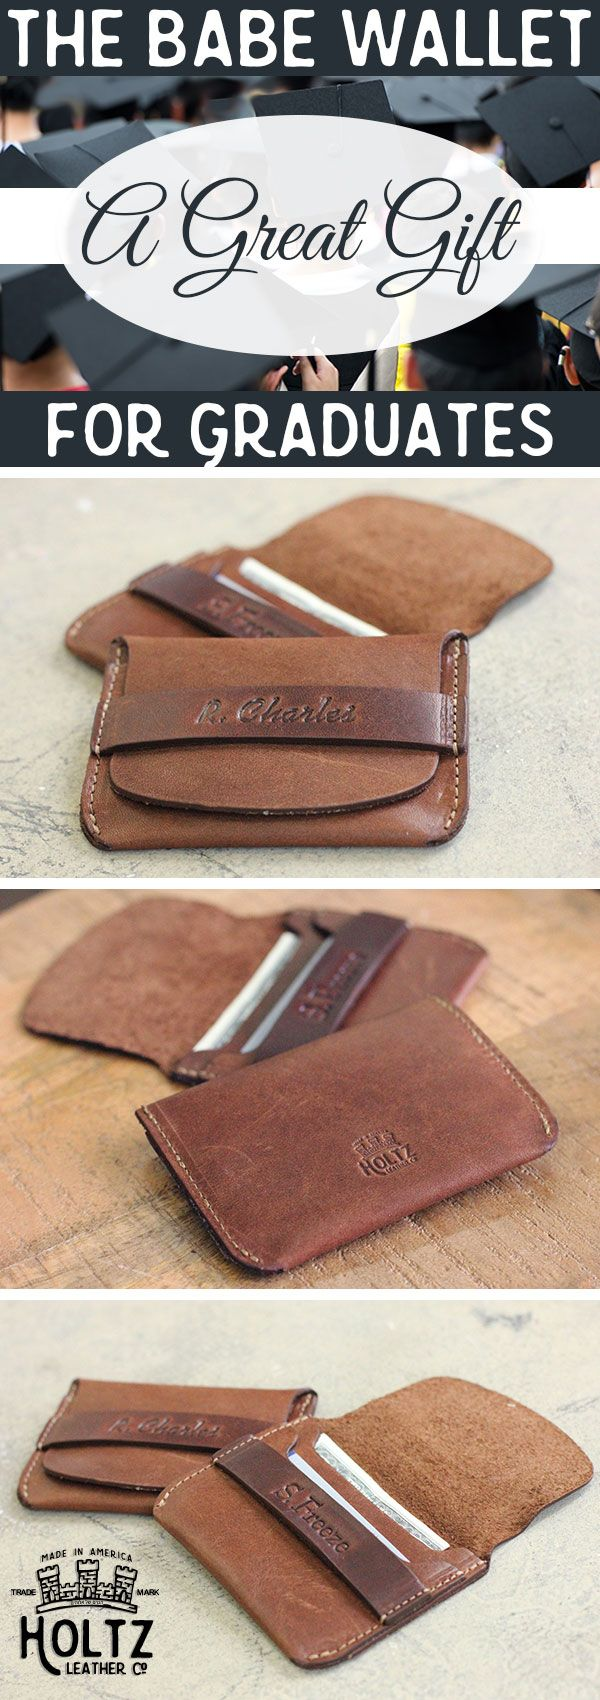 This Babe Wallet is a great gift for any recent graduate. Whether they're headed off to college or to their first job, this wallet is a great tool to have on hand. handmade wallet is made from Full Grain American leather, and is a great place to store business cards and new student IDs.